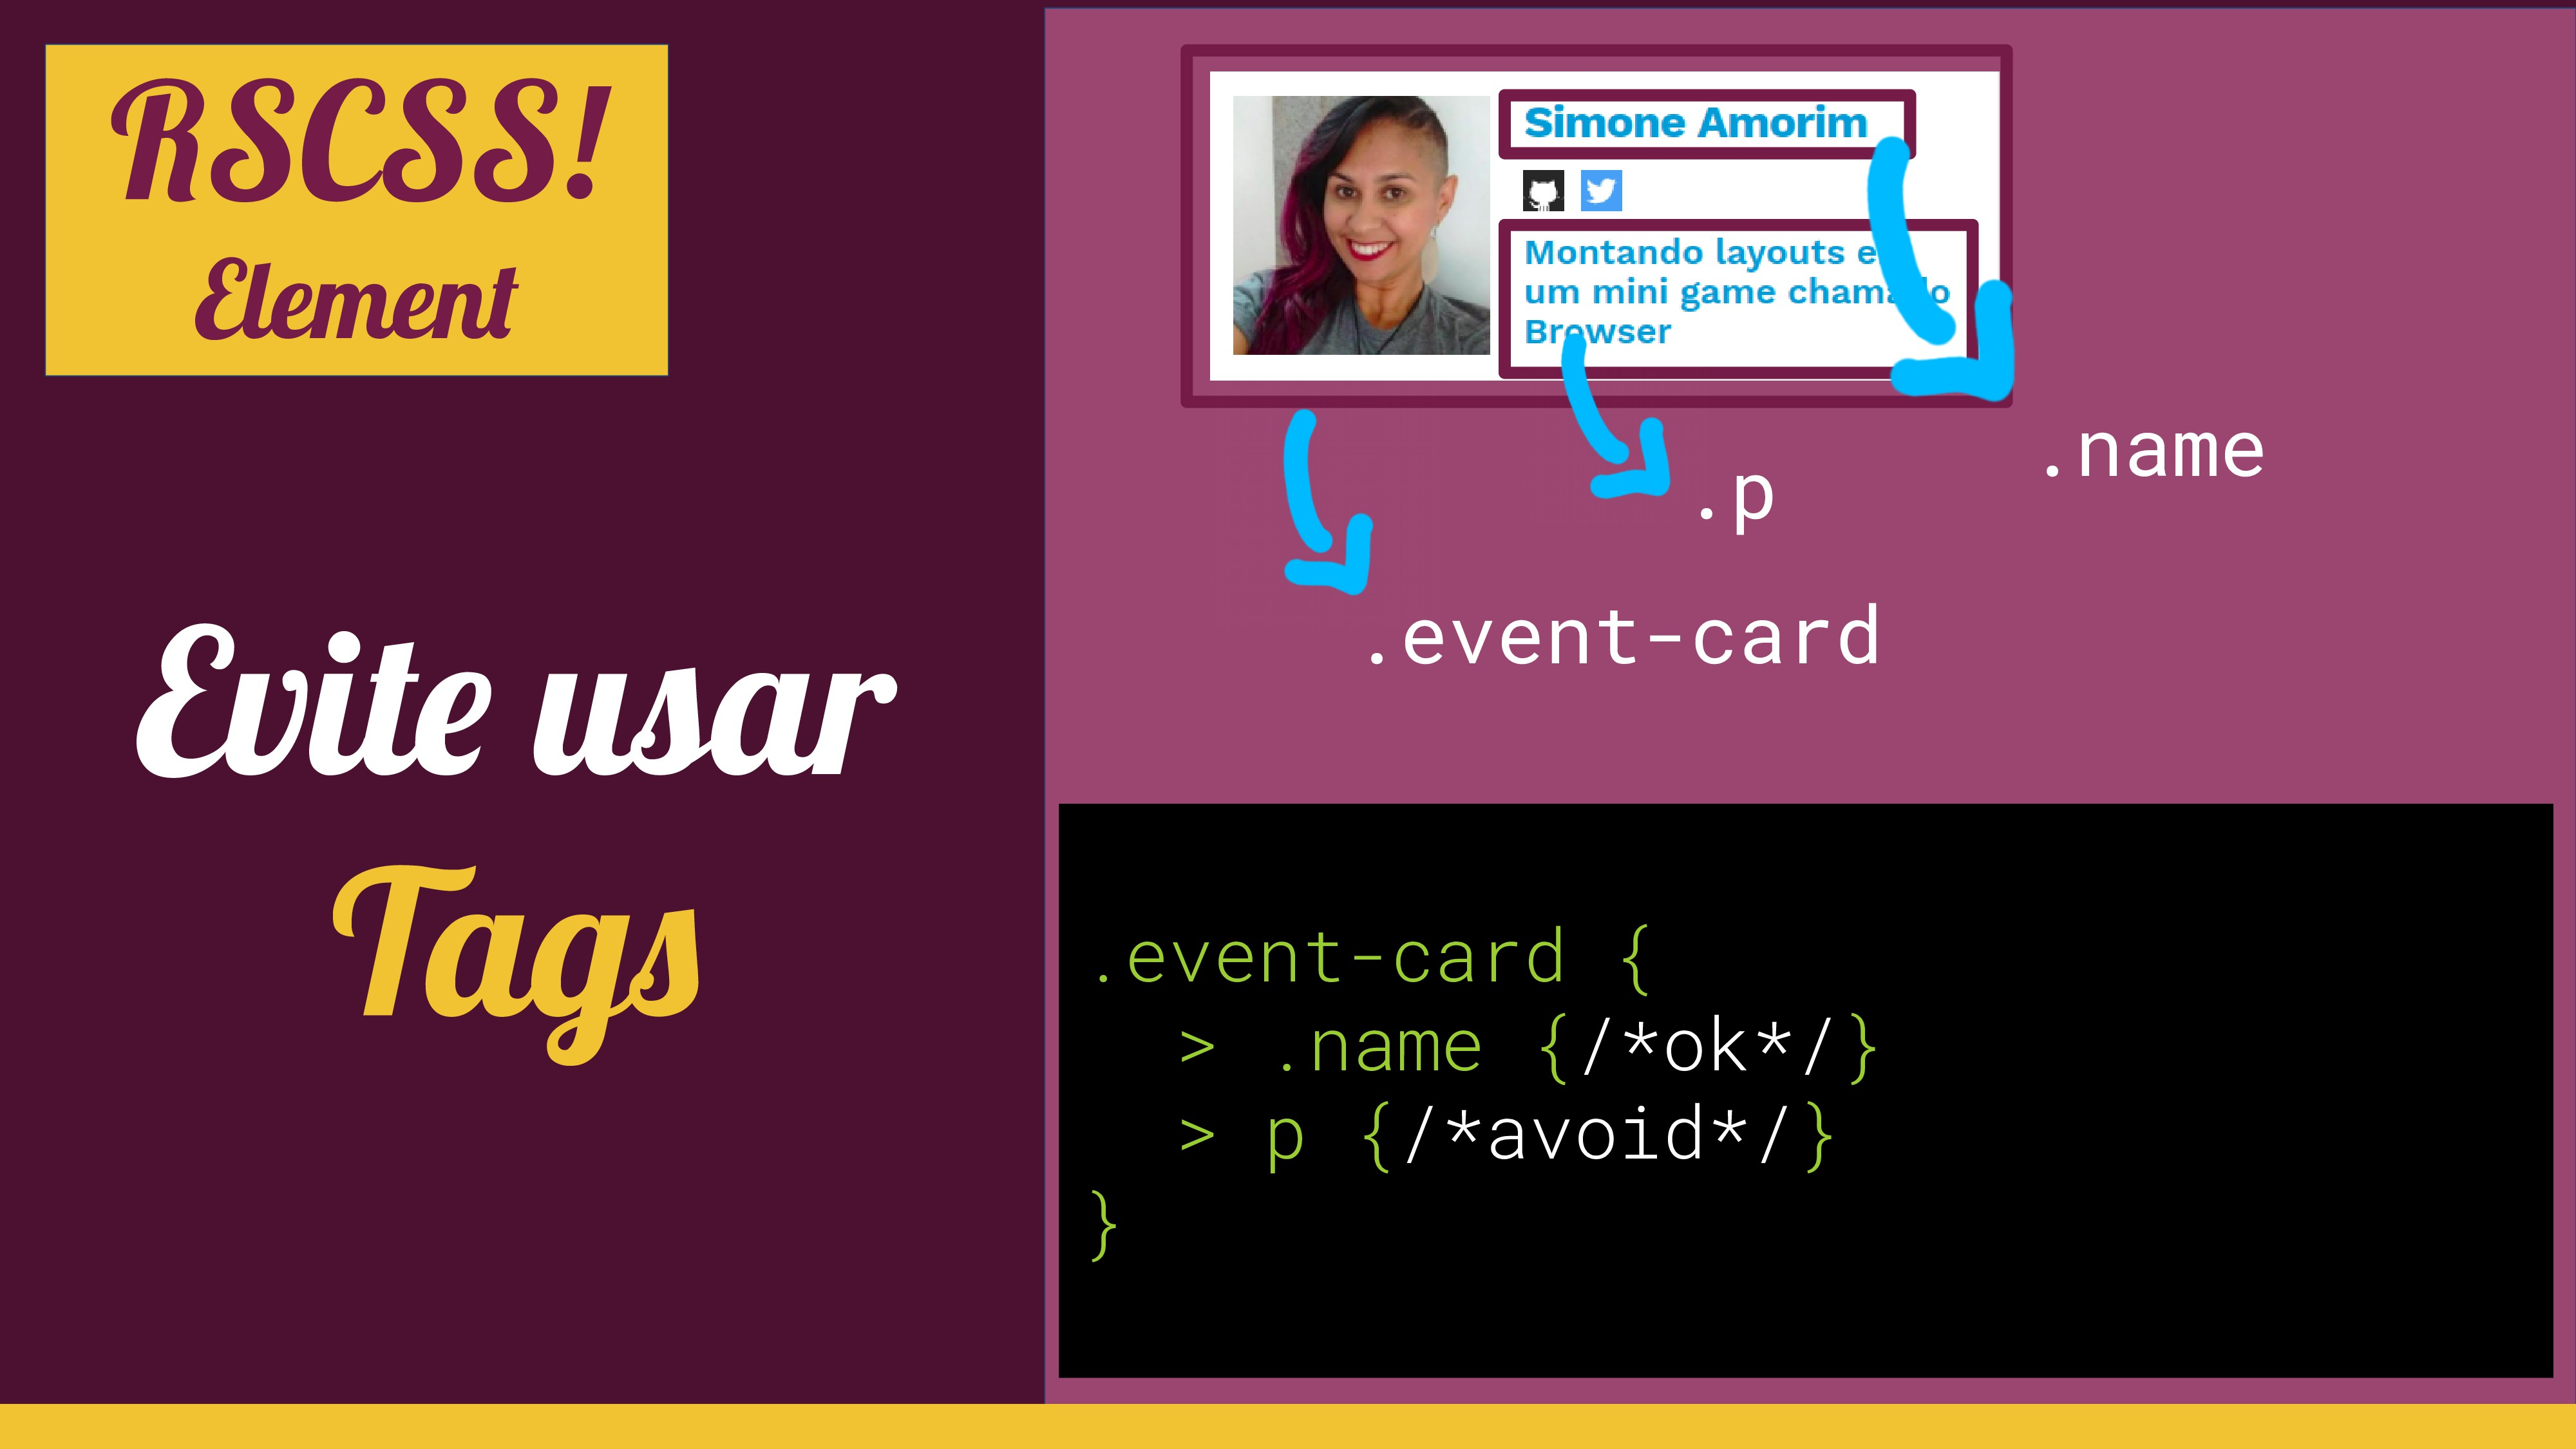 Evite usar Tags .event-card .p .event-card { > ...